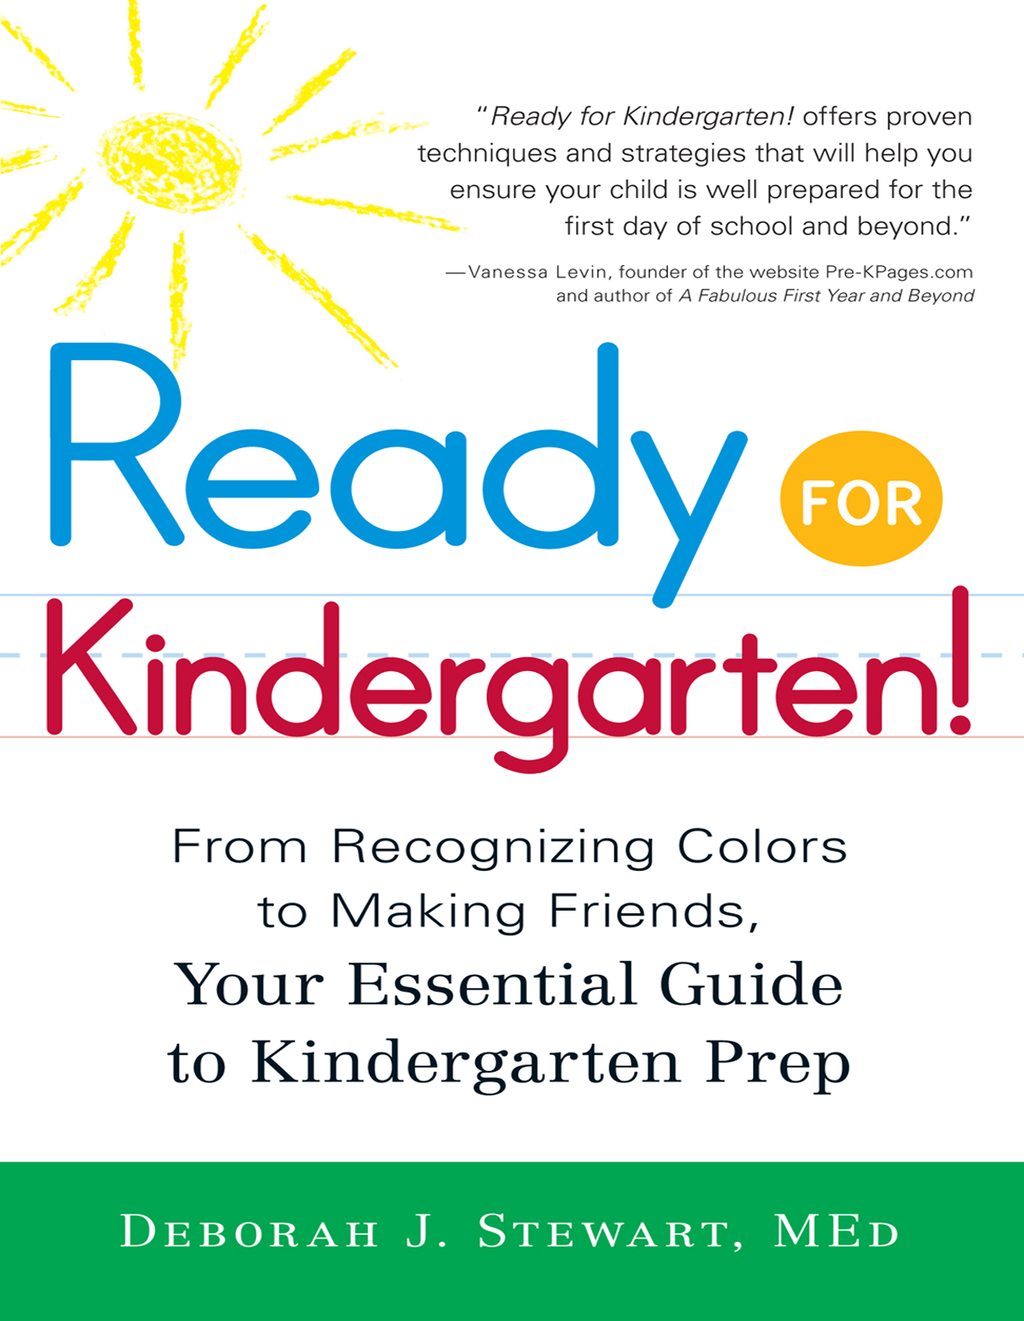 Ready for Kindergarten! From Recognizing Colors to Making Friends, Your Essential Guide to Kindergarten Prep